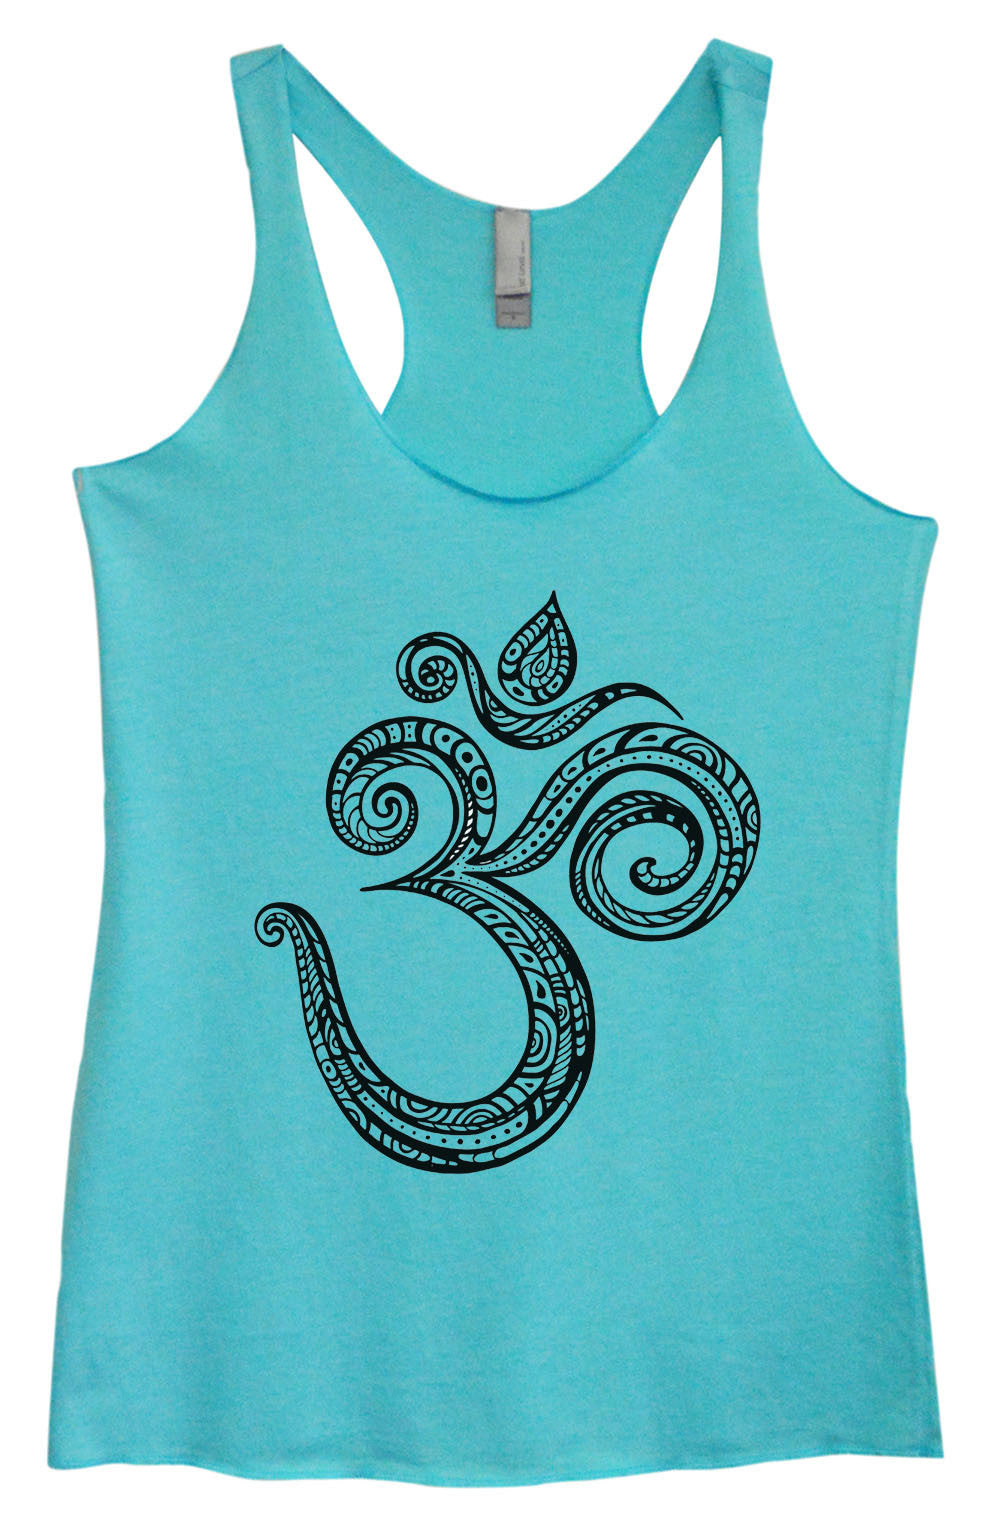 Womens Fashion Triblend Tank Top - OM - Tri-908 - Funny Shirts Tank Tops Burnouts and Triblends  - 3